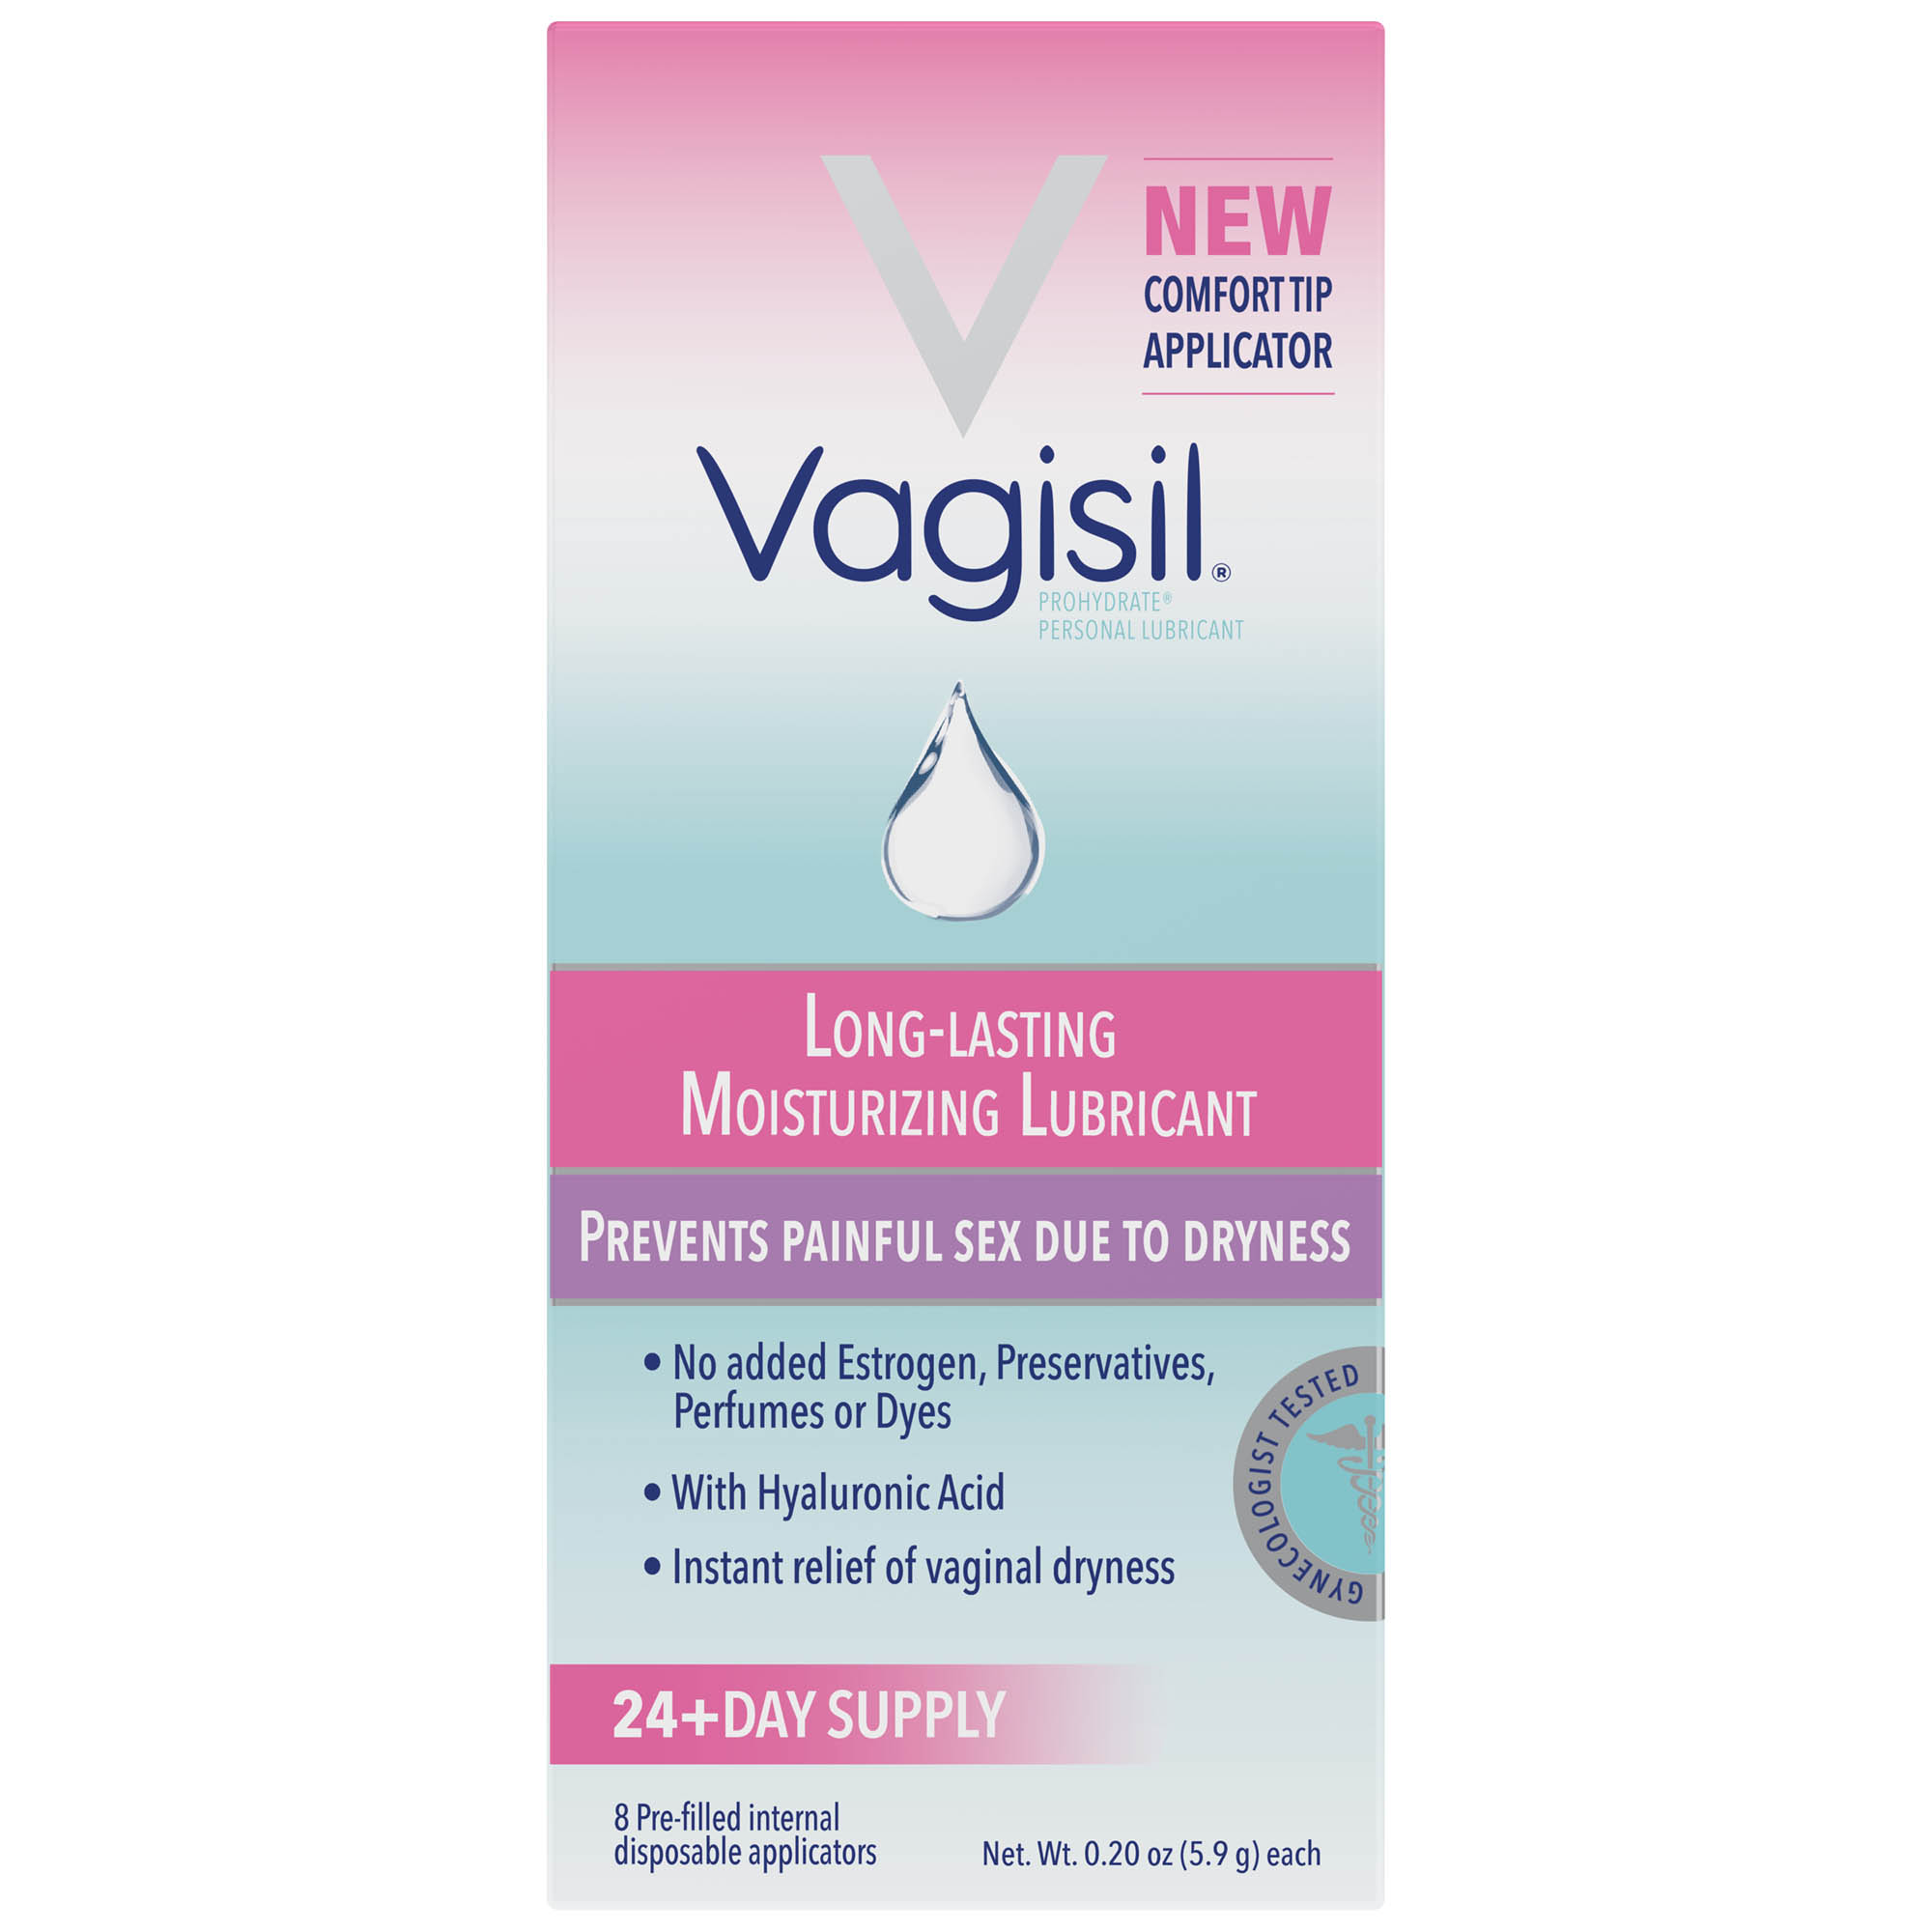 Vagisil Prohydrate, Internal Vaginal Moisturizing Gel and Personal Lubricant, 8 Pre-filled Internal Disposable Applicators